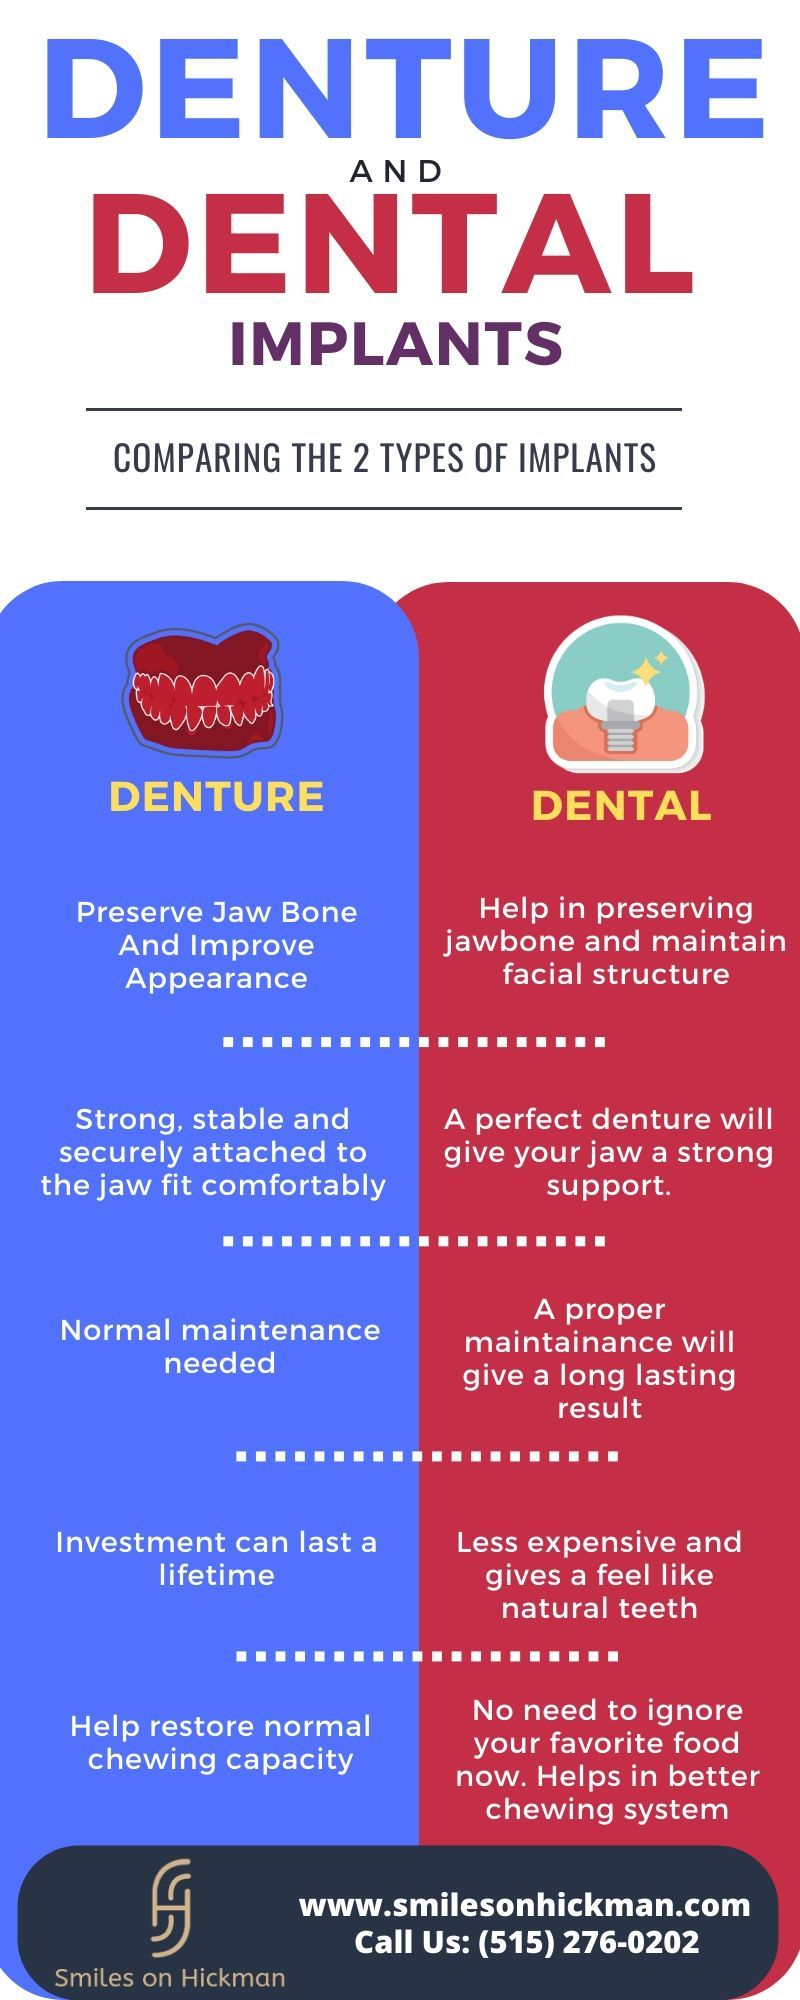 Difference between denture and dental implants